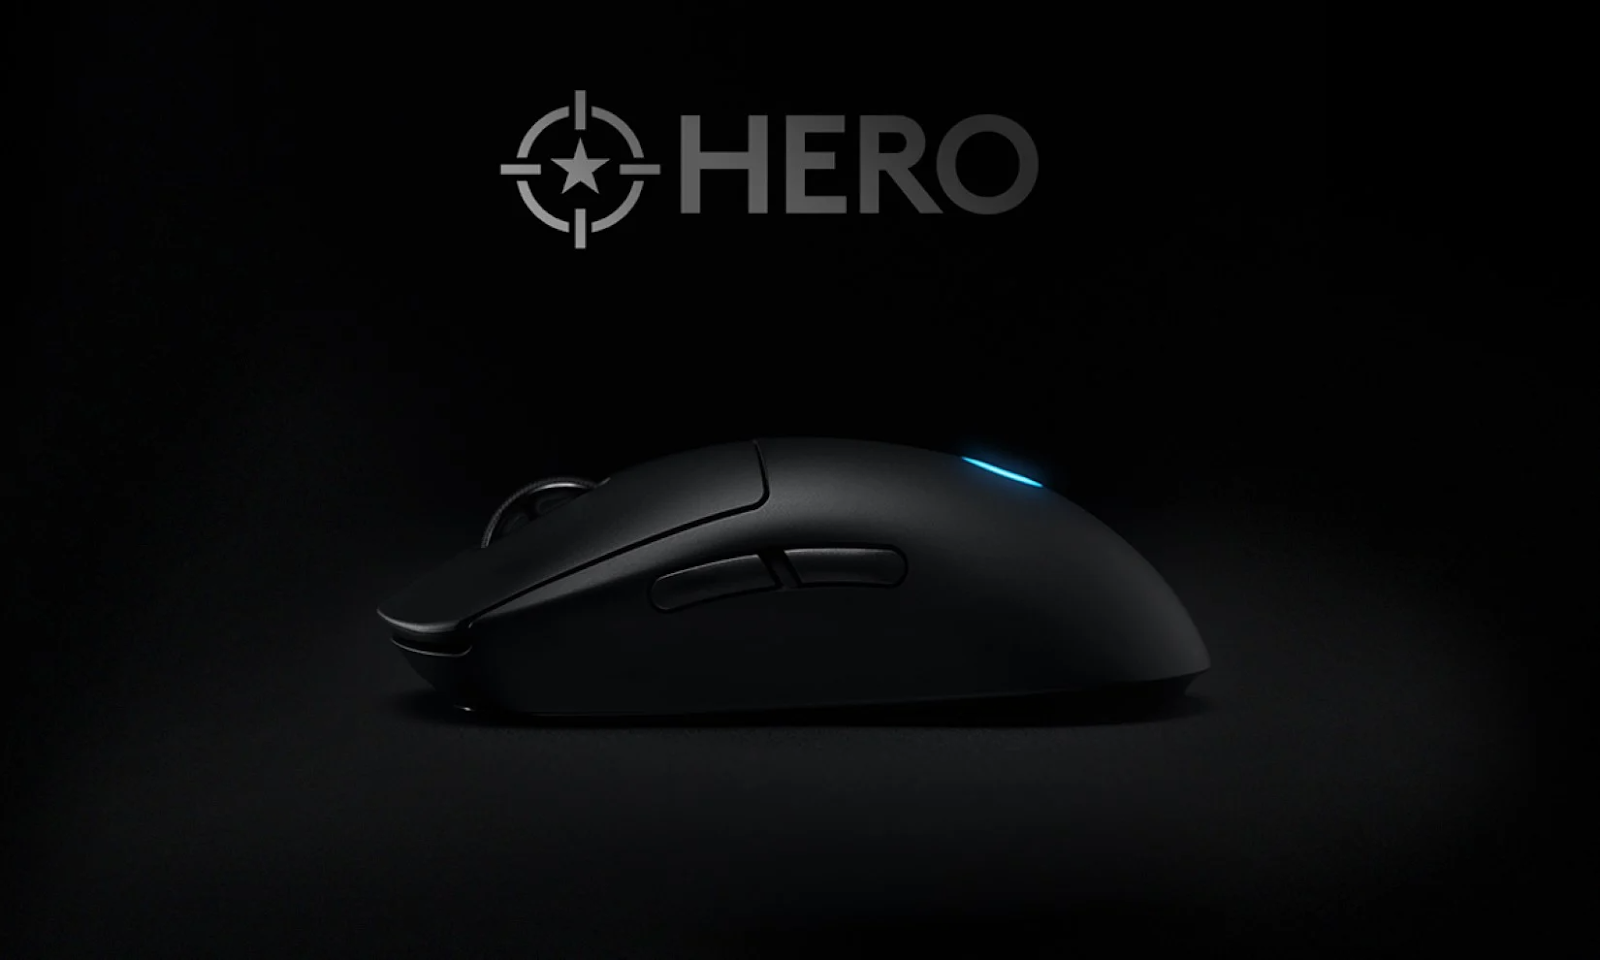 The best Logitech G Pro Wireless wireless mouse game available today